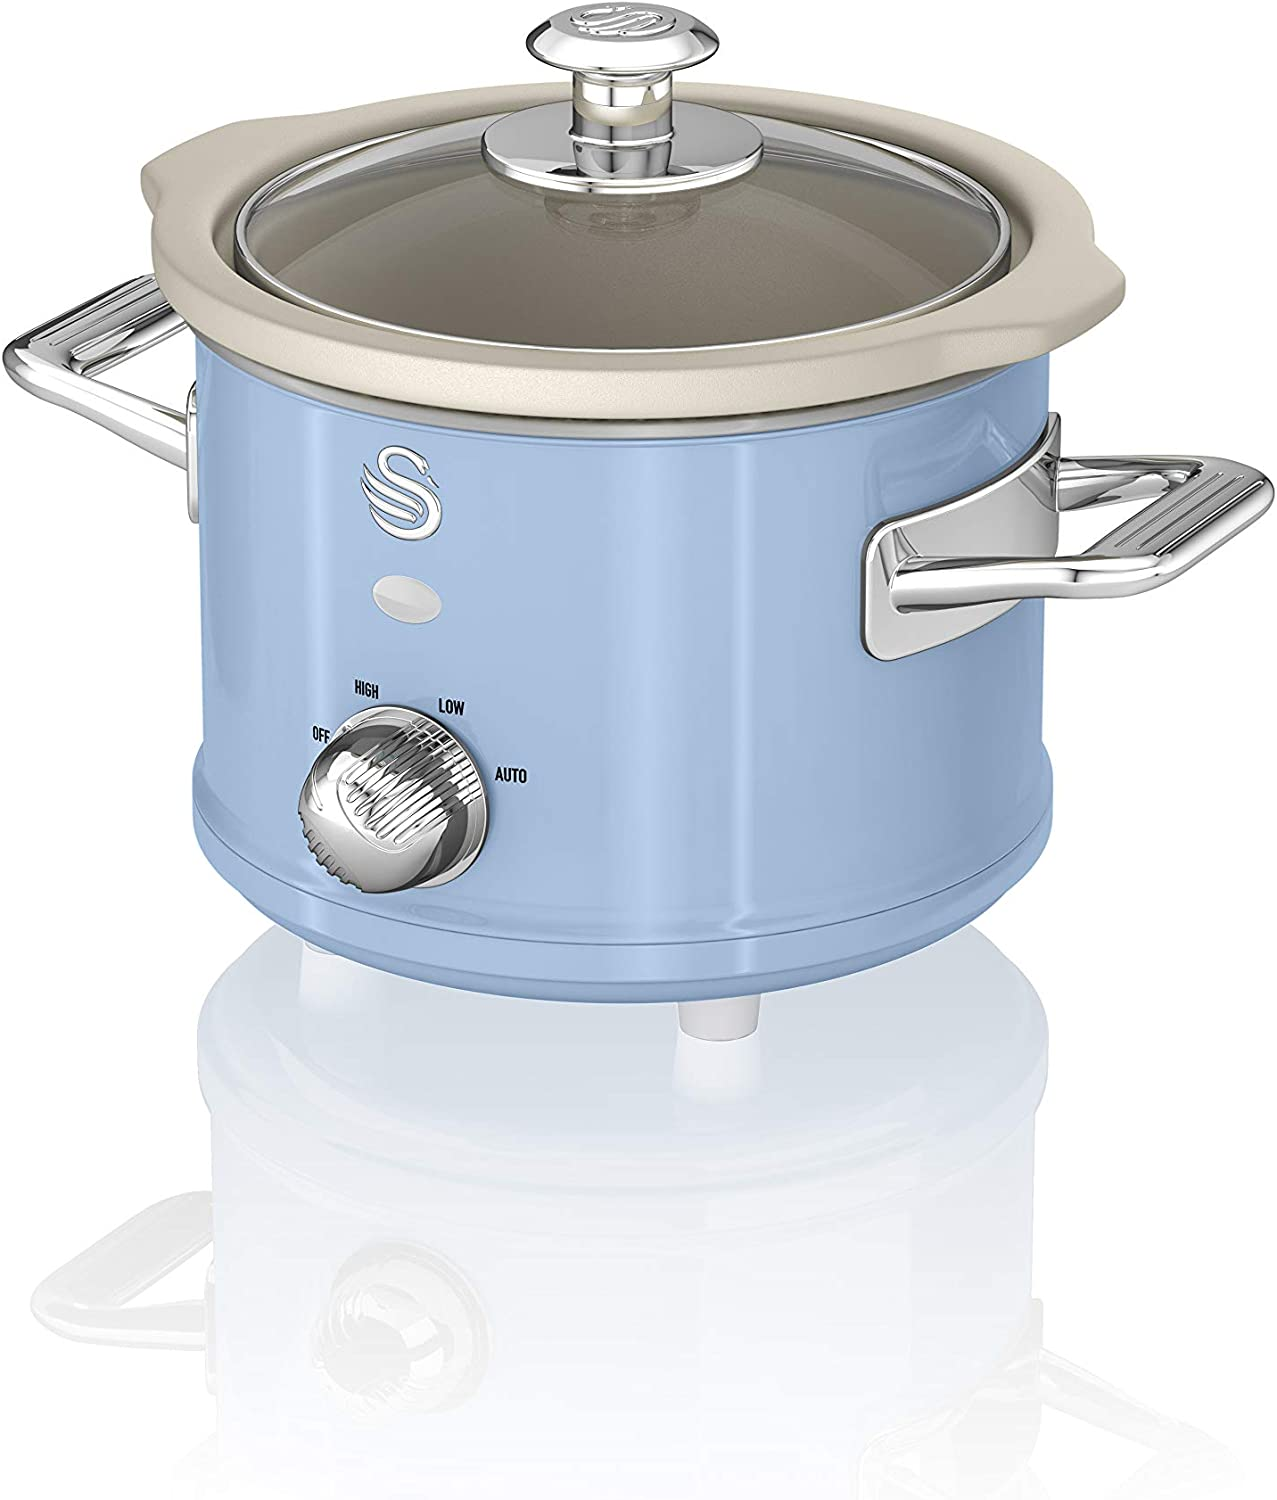 Swan 1.5 Litre Retro Slow Cooker with Removable Ceramic Pot, 3 Heat Settings, 120w